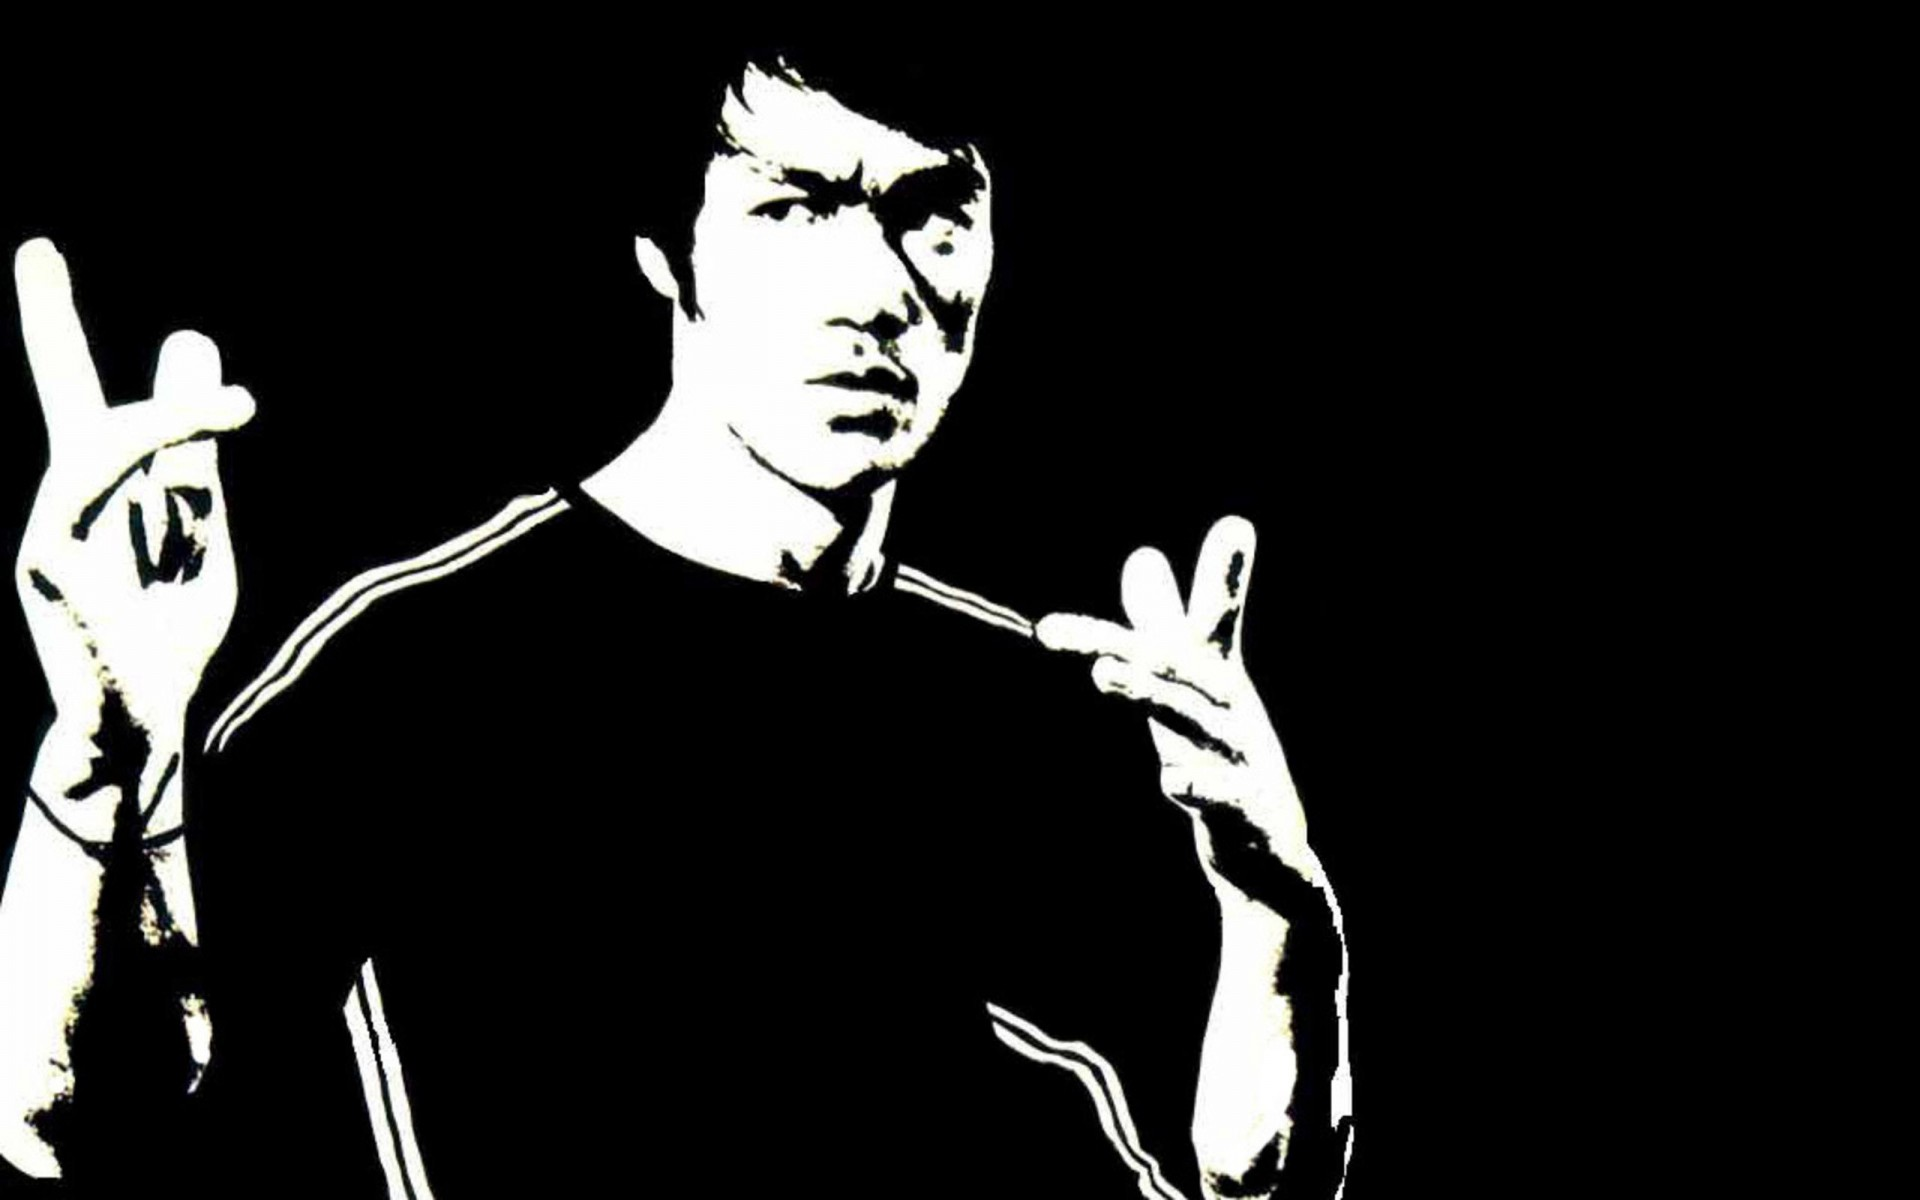 Bruce Lee HD Wallpapers Bruce Lee high quality and definition 1920x1200